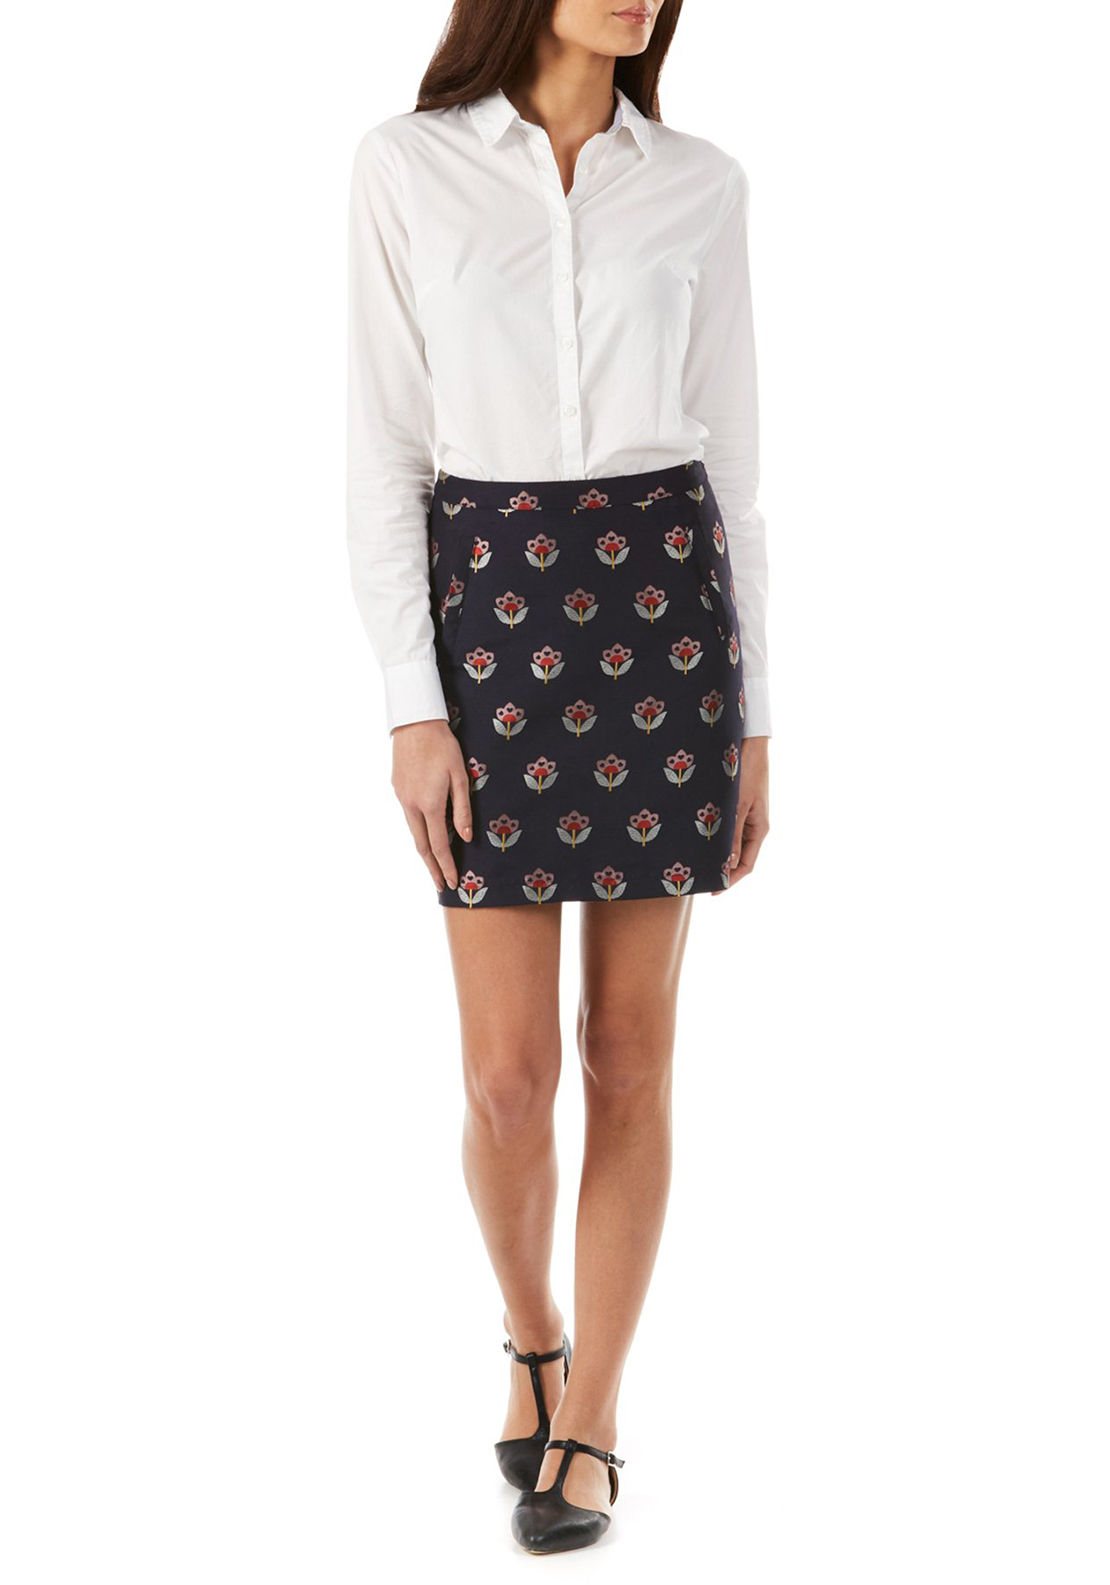 Sugarhill Boutique Evra Floral Love Skirt, Navy